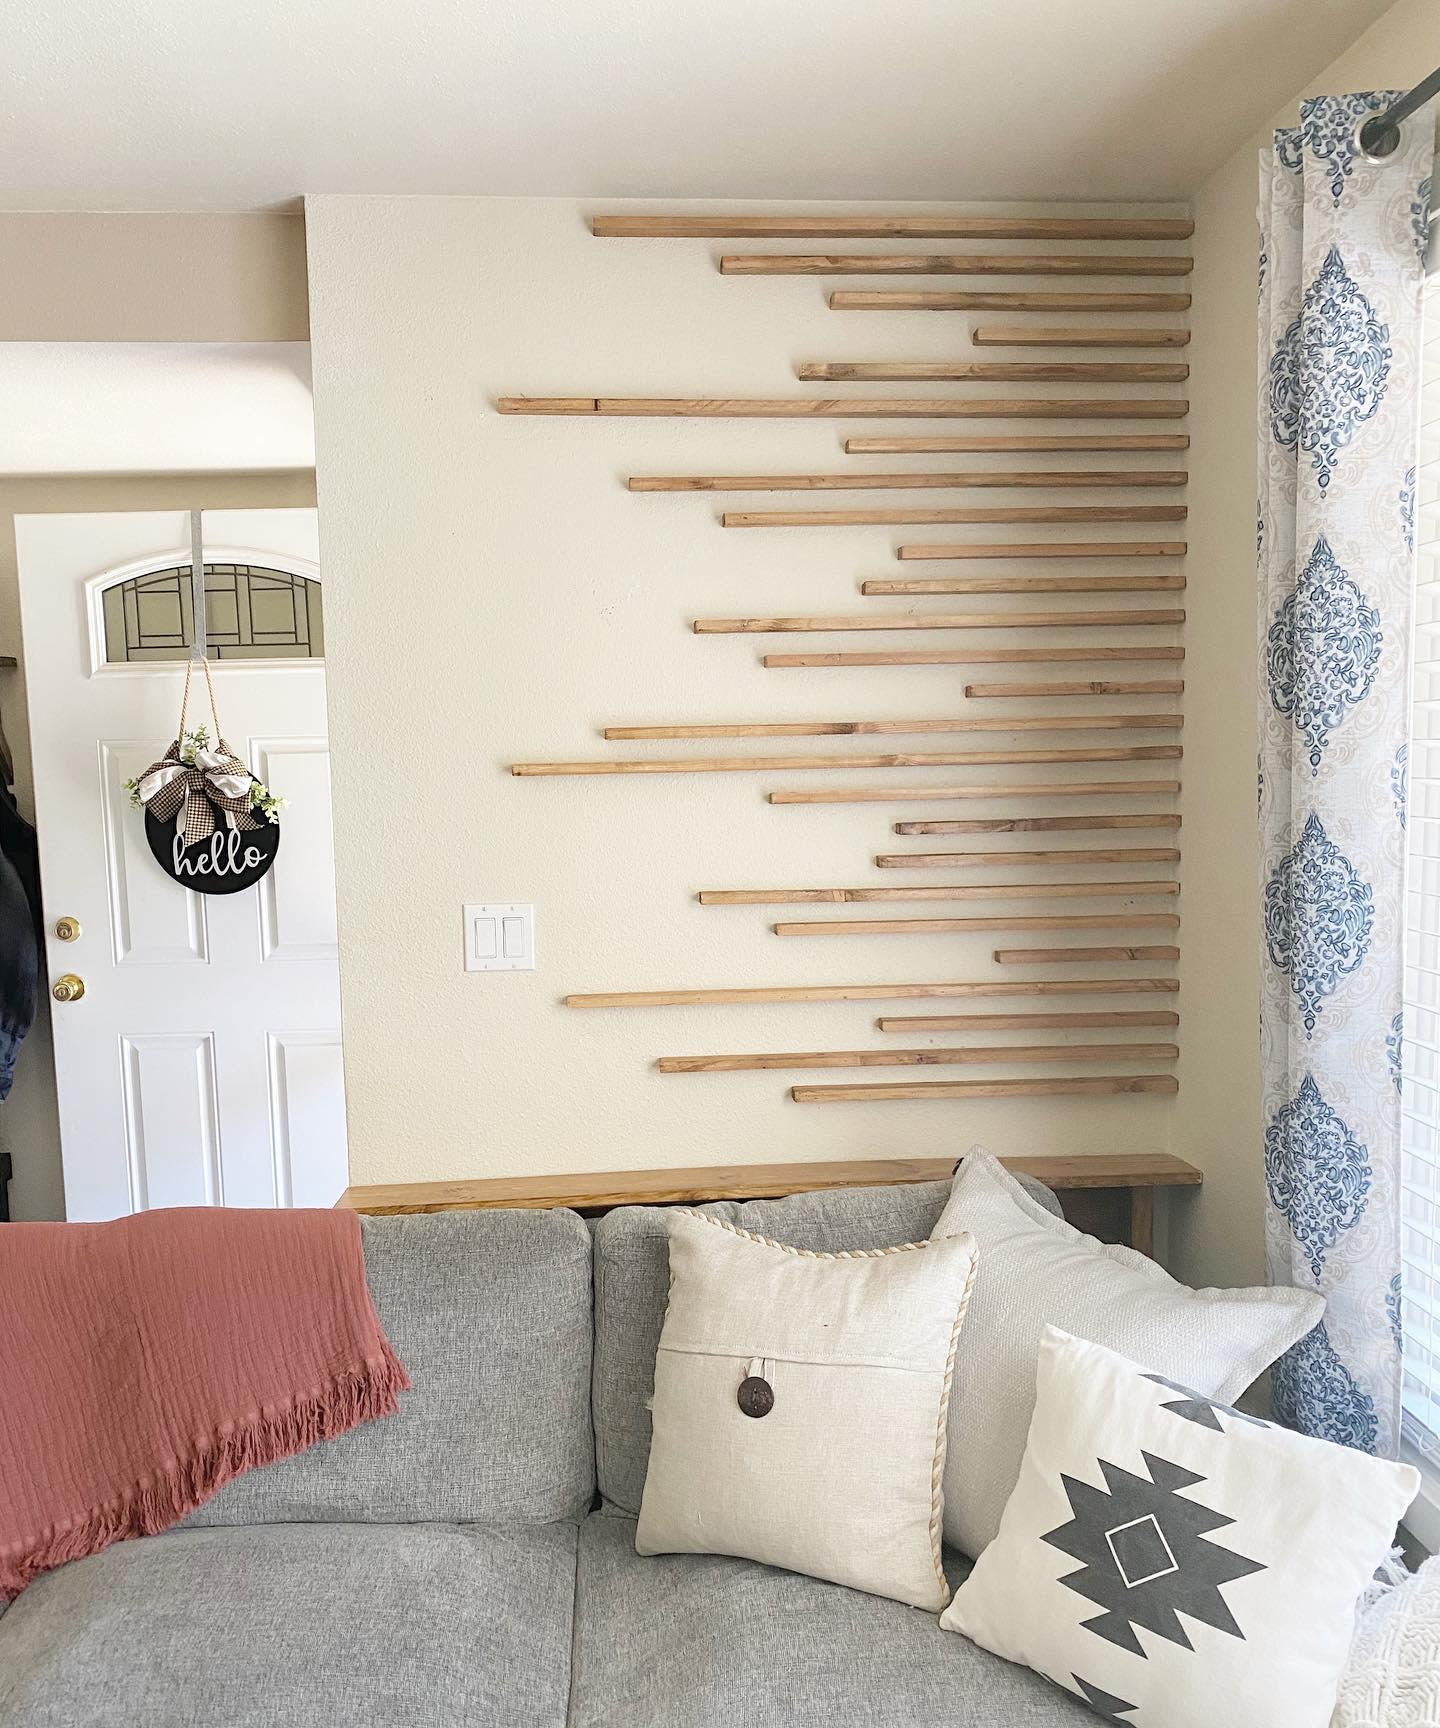 Unique Accent Wall Ideas for Living Room -jesswhite011